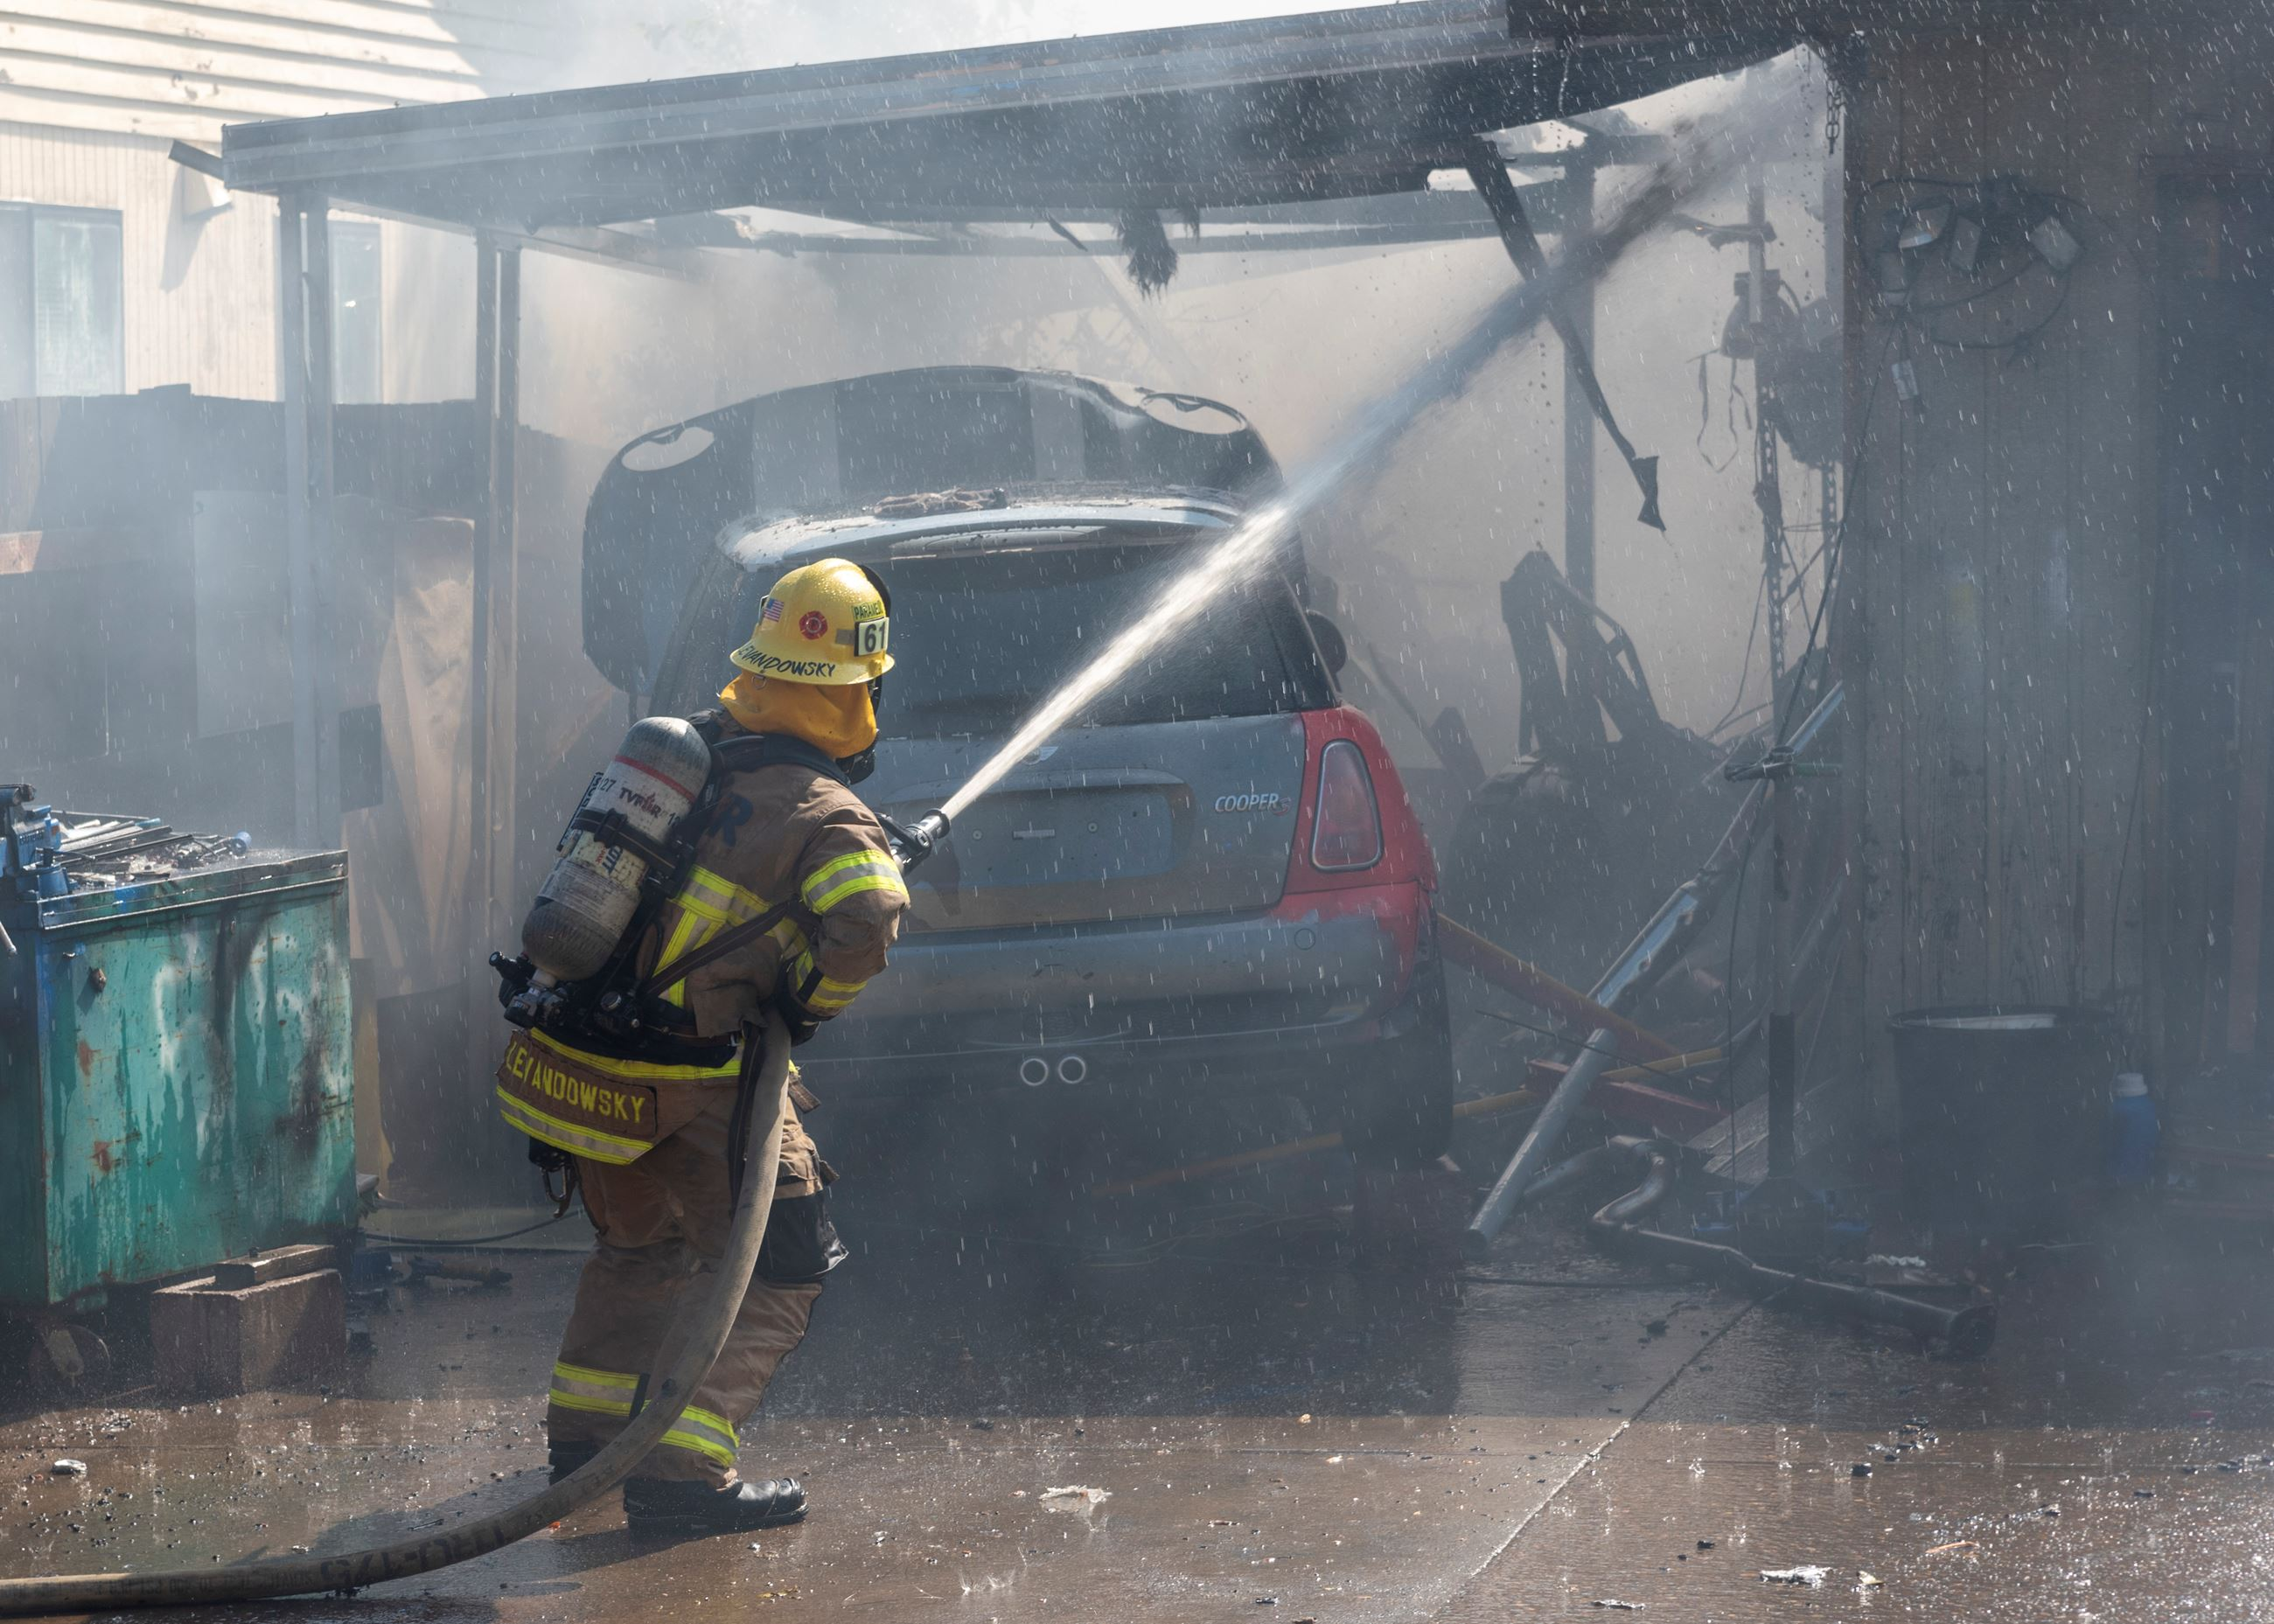 Firefighter sprays water on residential fire